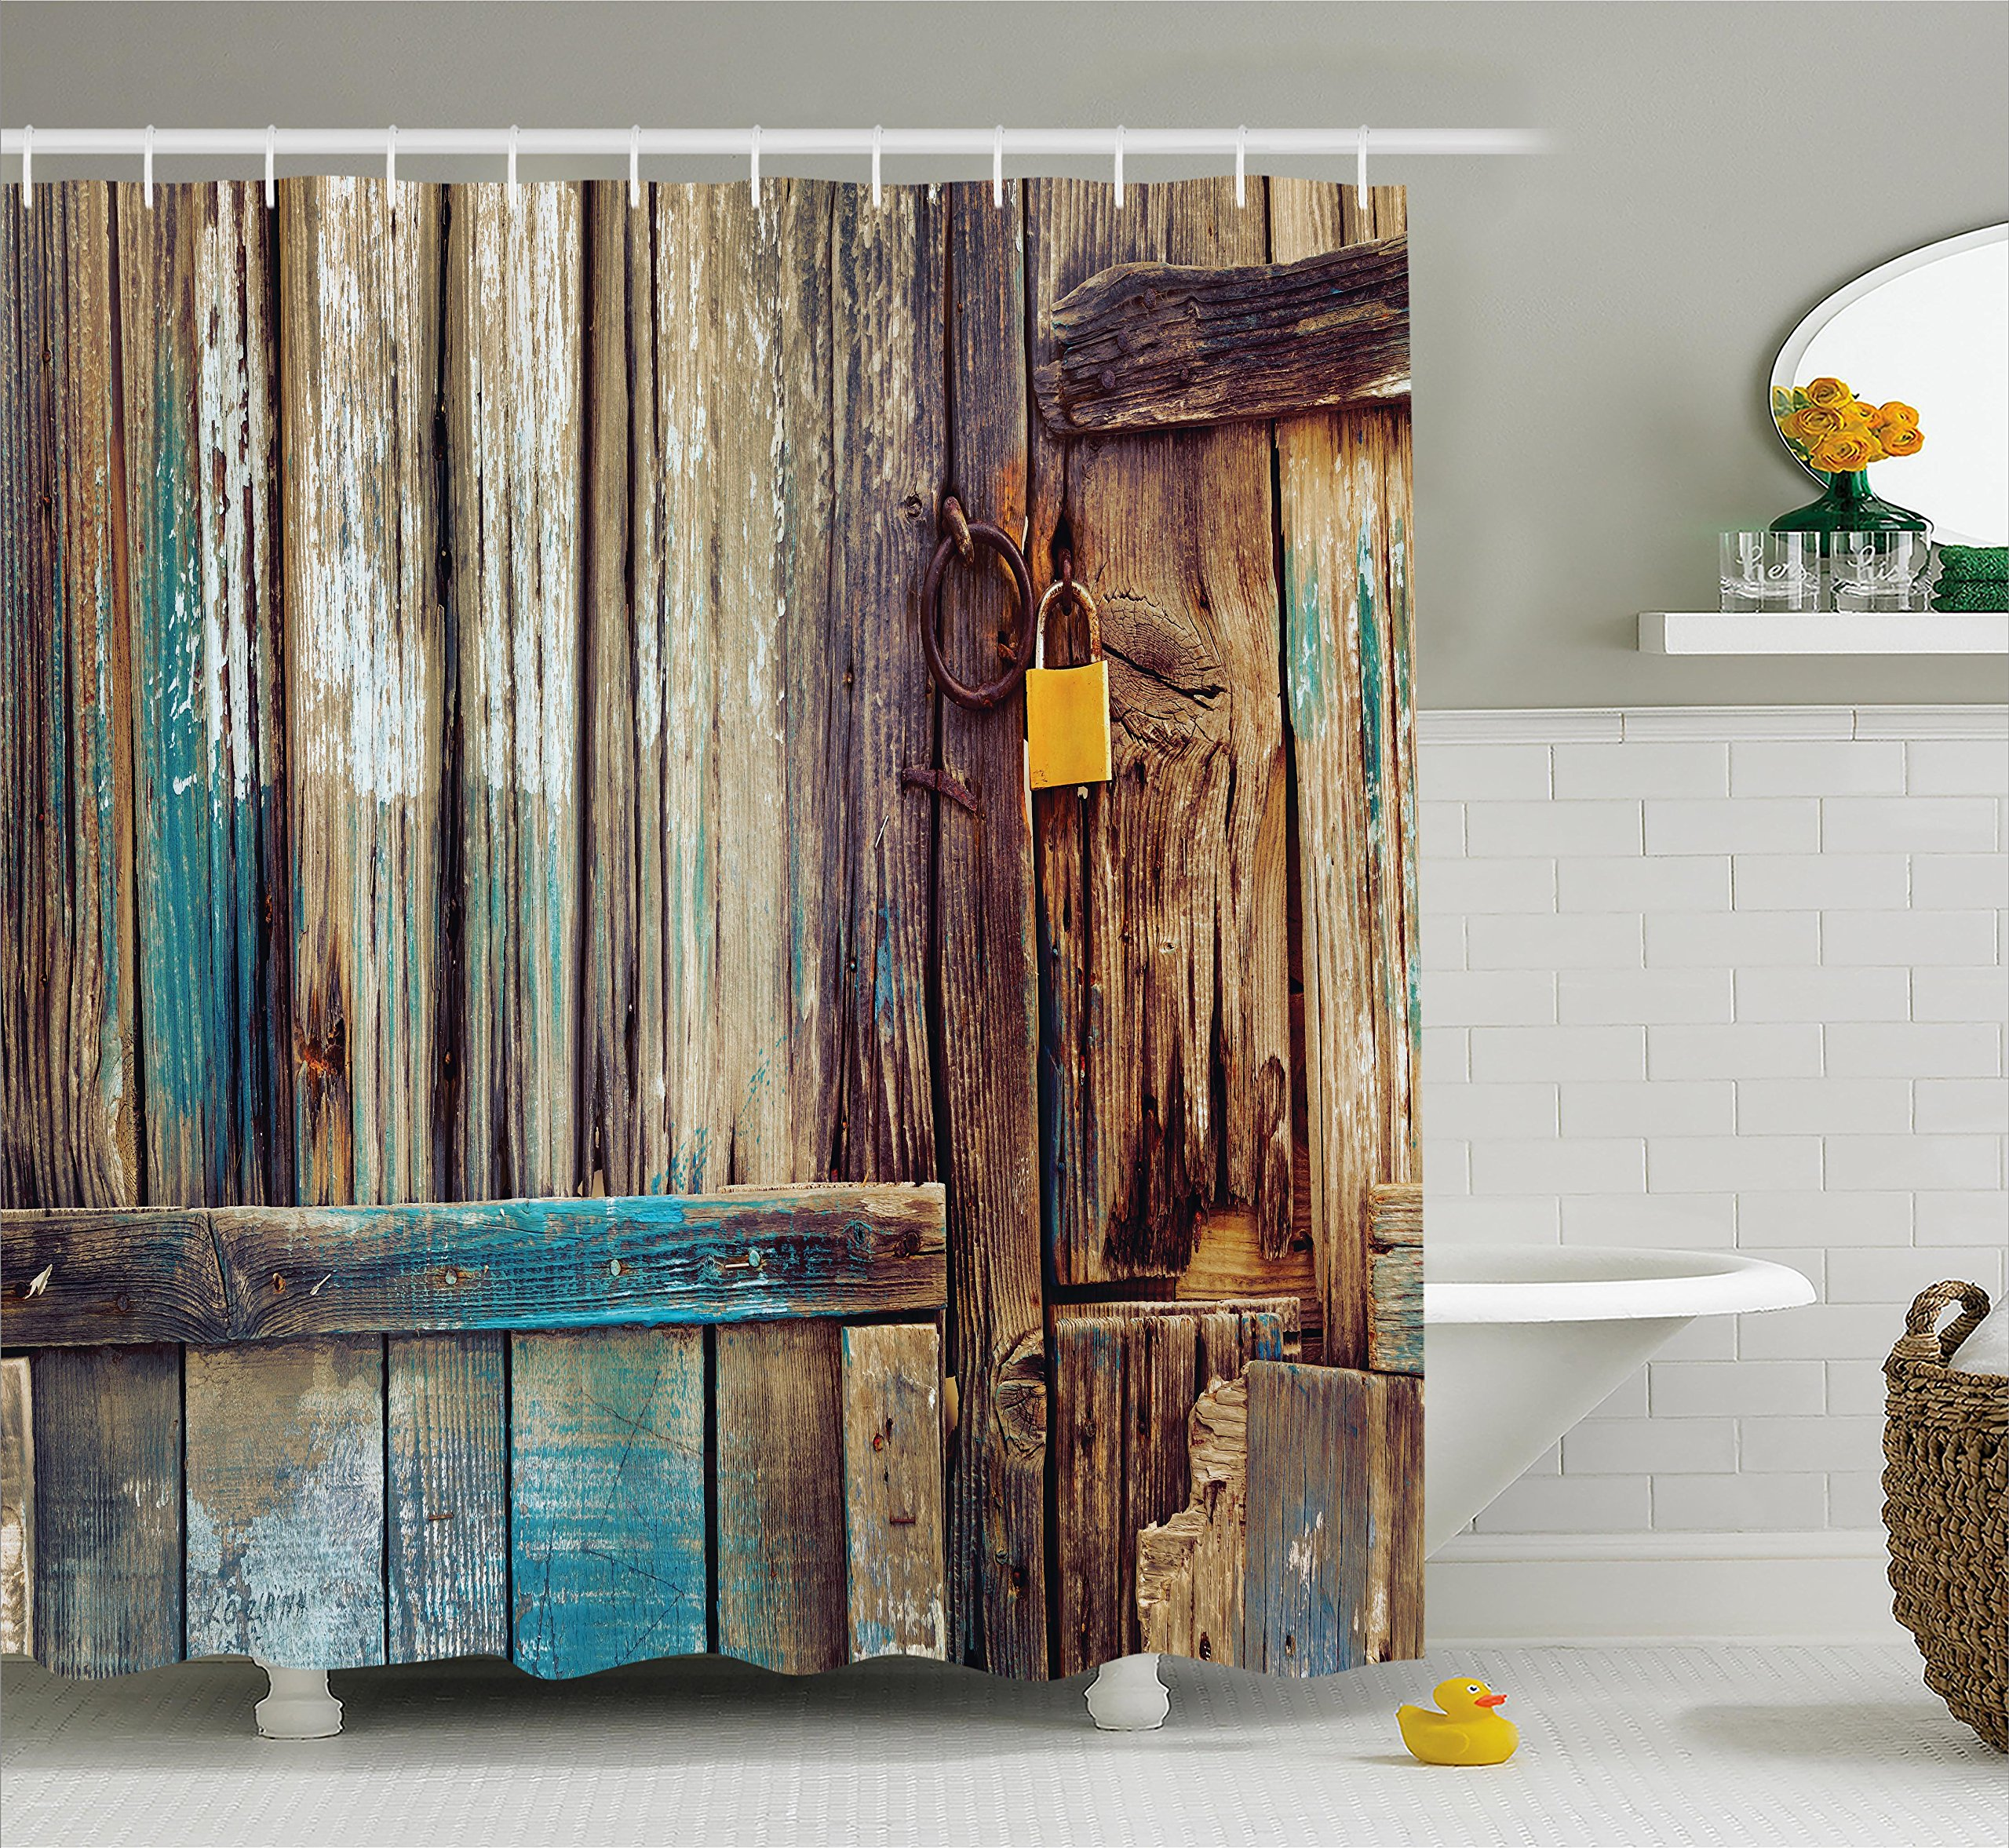 Ambesonne Rustic Shower Curtain, Aged Shed Door Backdrop with Color Details Country Living Exterior Pastoral Mansion Image, Fabric Bathroom Decor Set with Hooks, 75 Inches Long, Brown